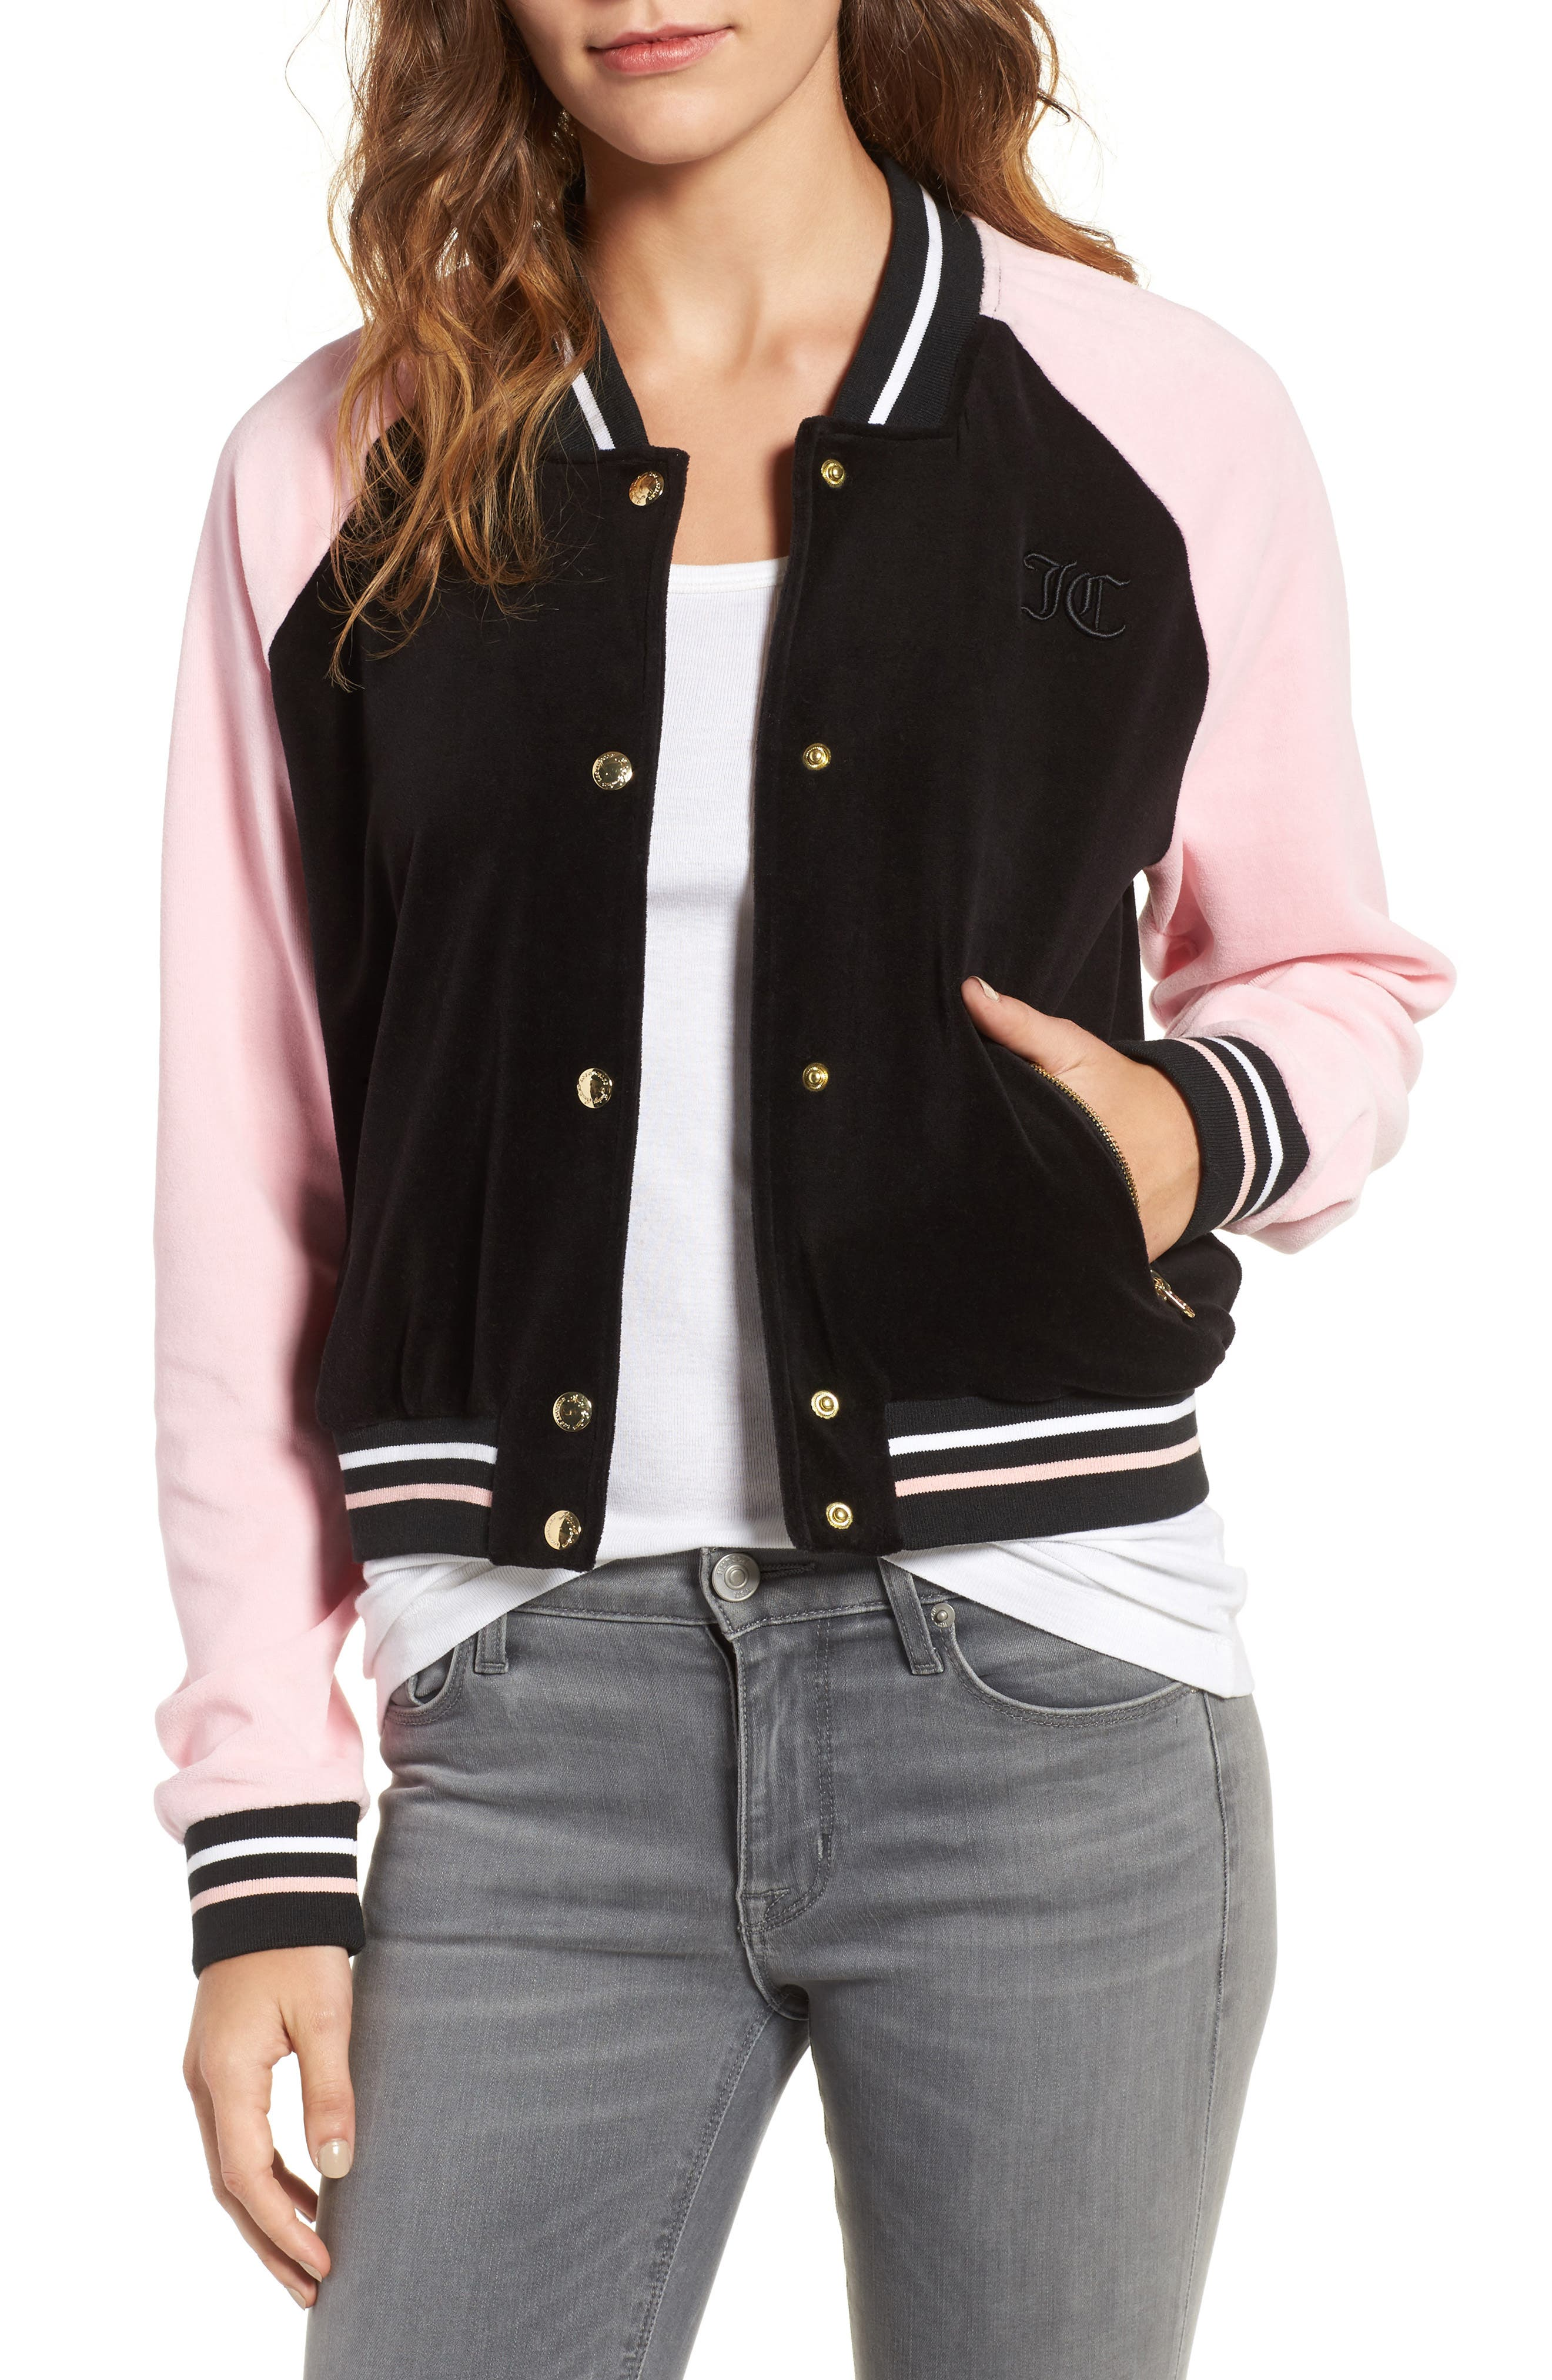 Main Image - Juicy Couture Colorblock Velour Track Jacket